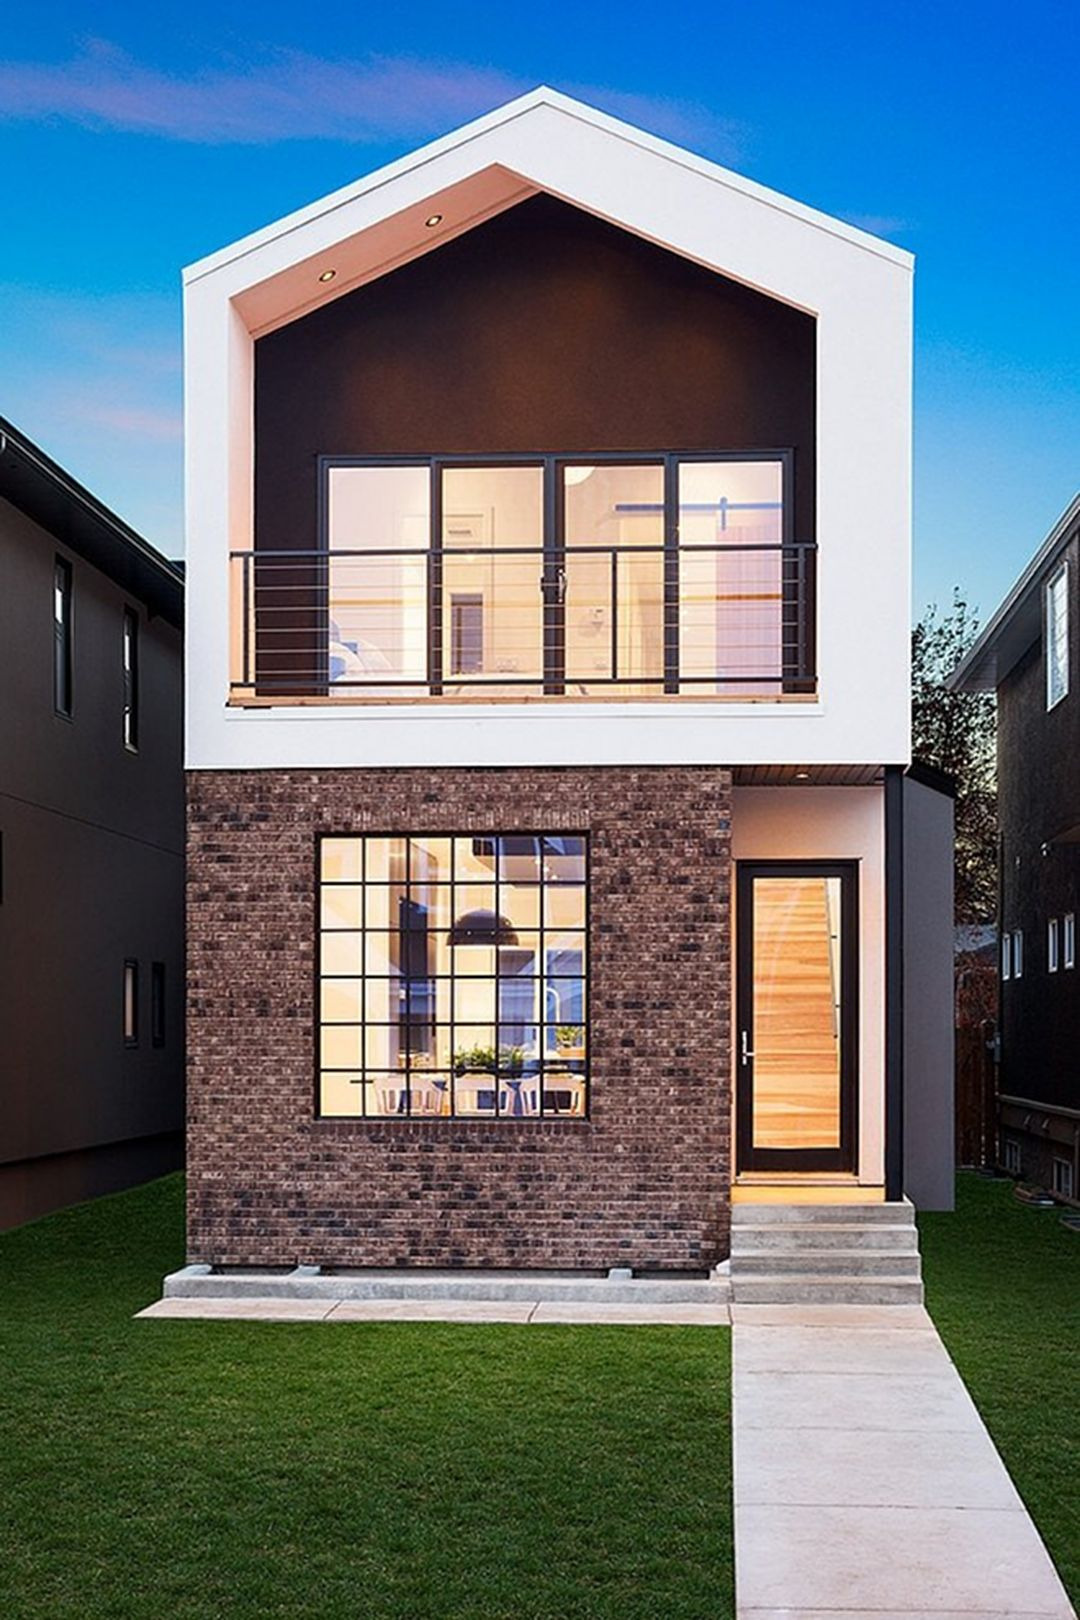 Amazing Modern House Plans Unique 25 Awesome Modern Tiny Houses Design Ideas for Simple and